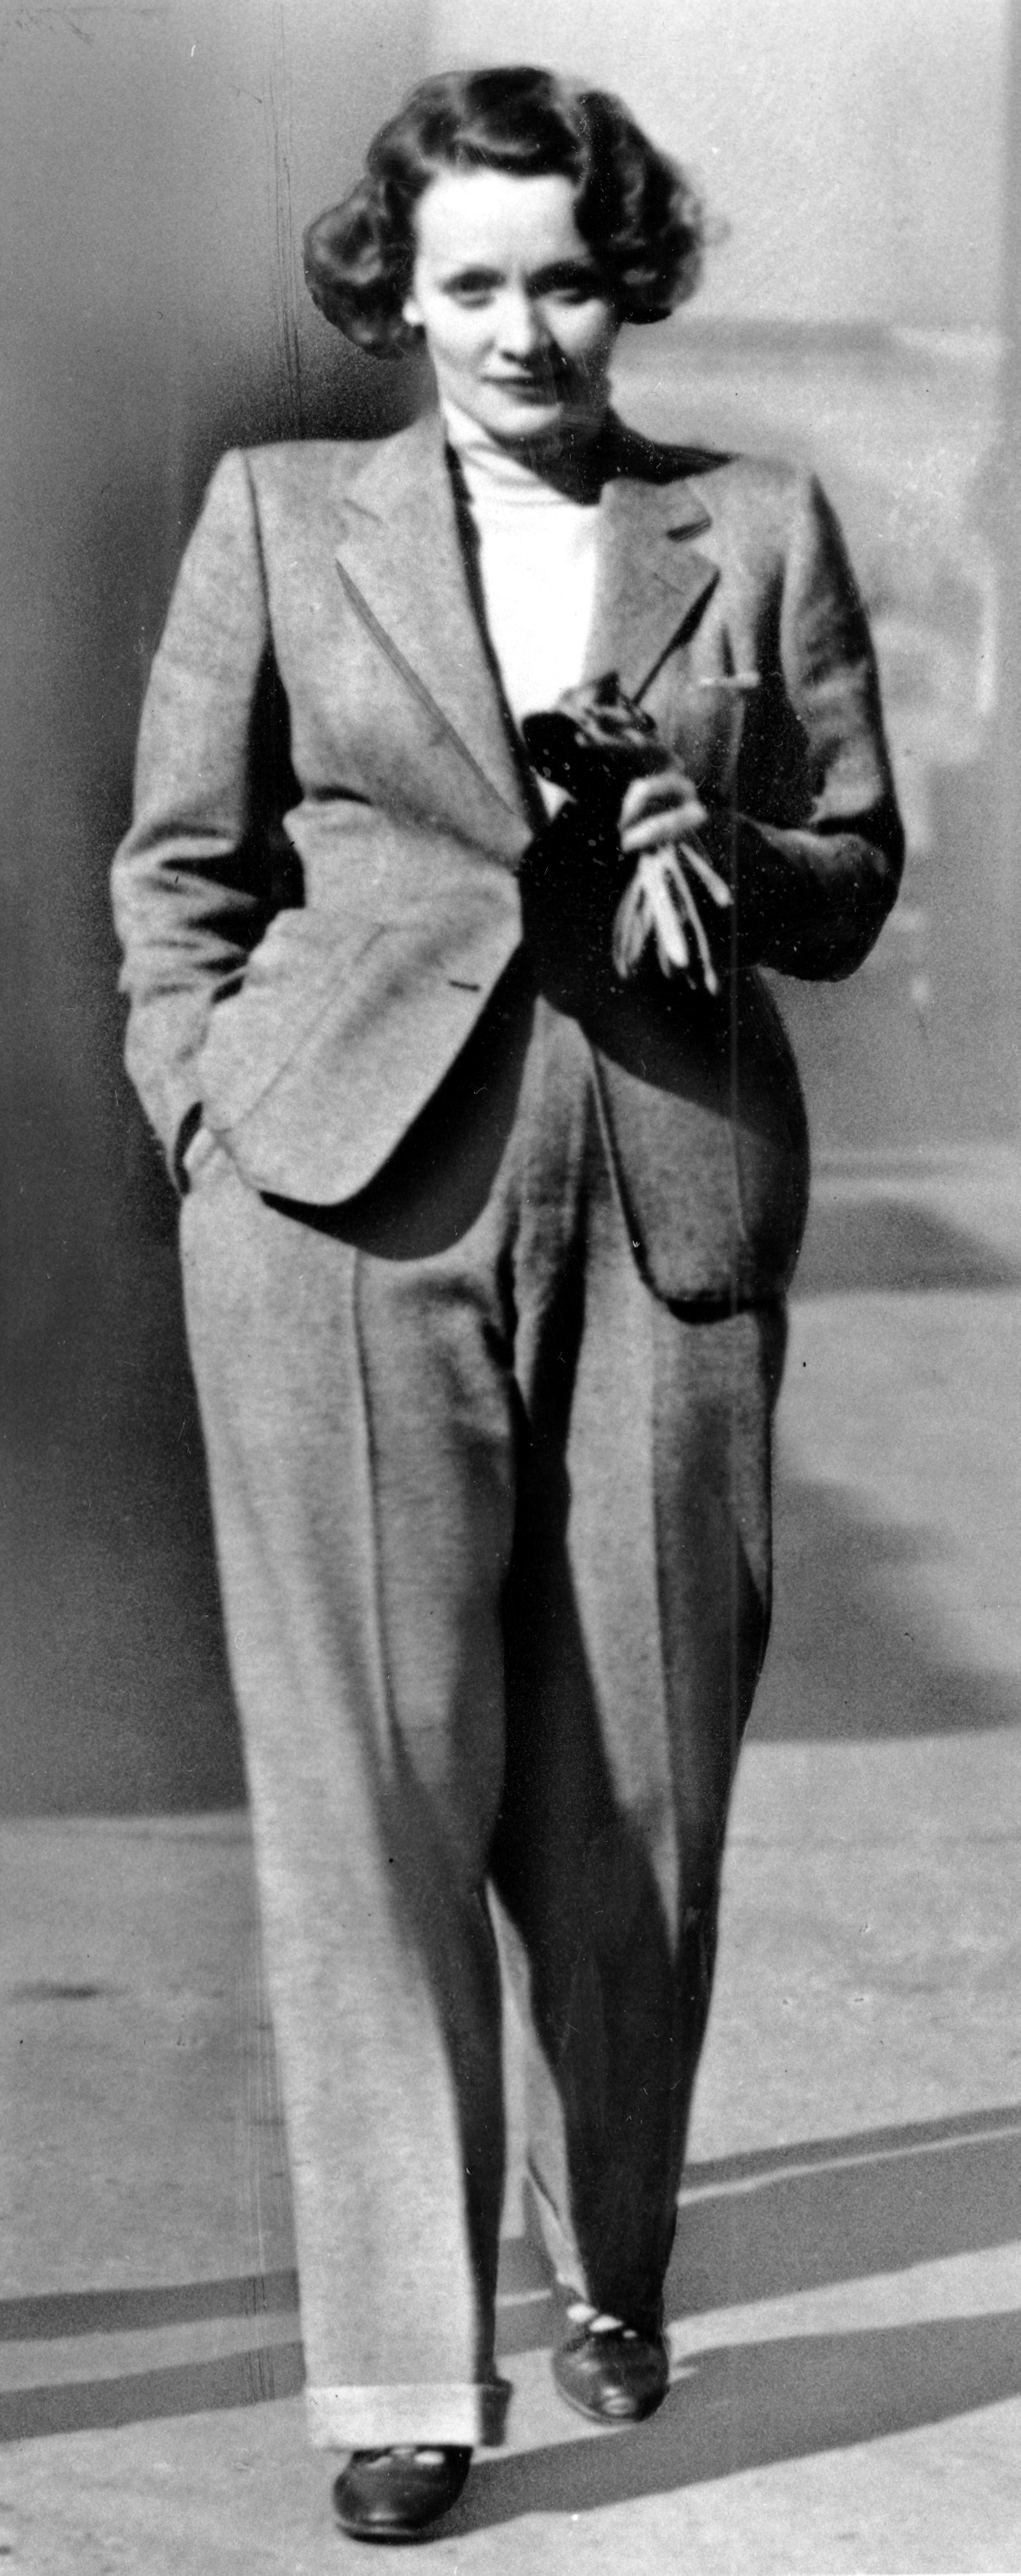 Actress Marlene Dietrich wears a trendsetting masculine style pant suit created by French couturiere Coco Chanel in 1933.